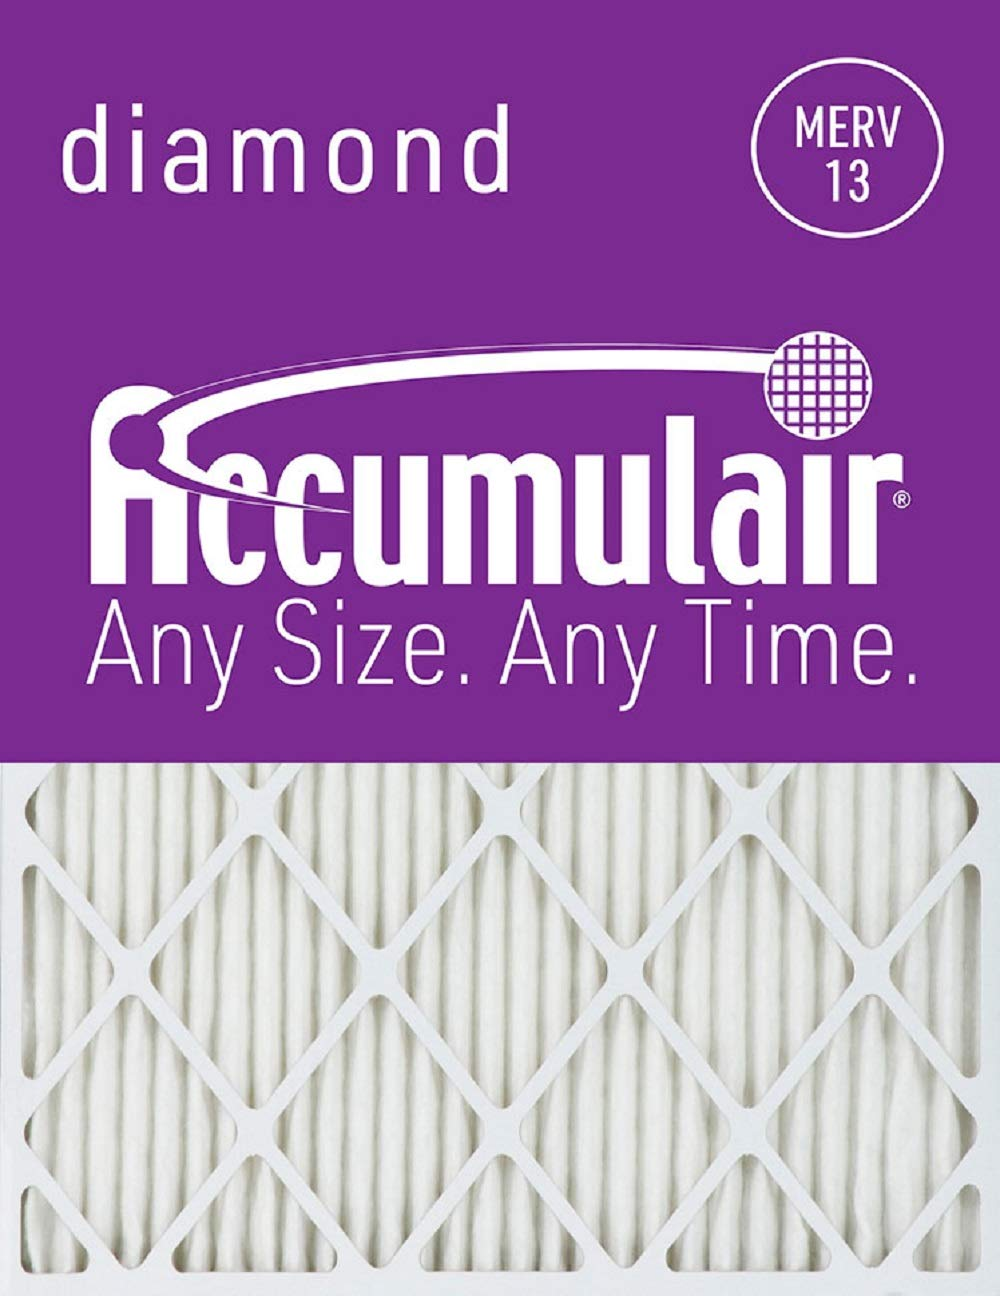 Accumulair Diamond 18.25x22x1 (Actual Size) MERV 13 Air Filter/Furnace Filters (6 pack)